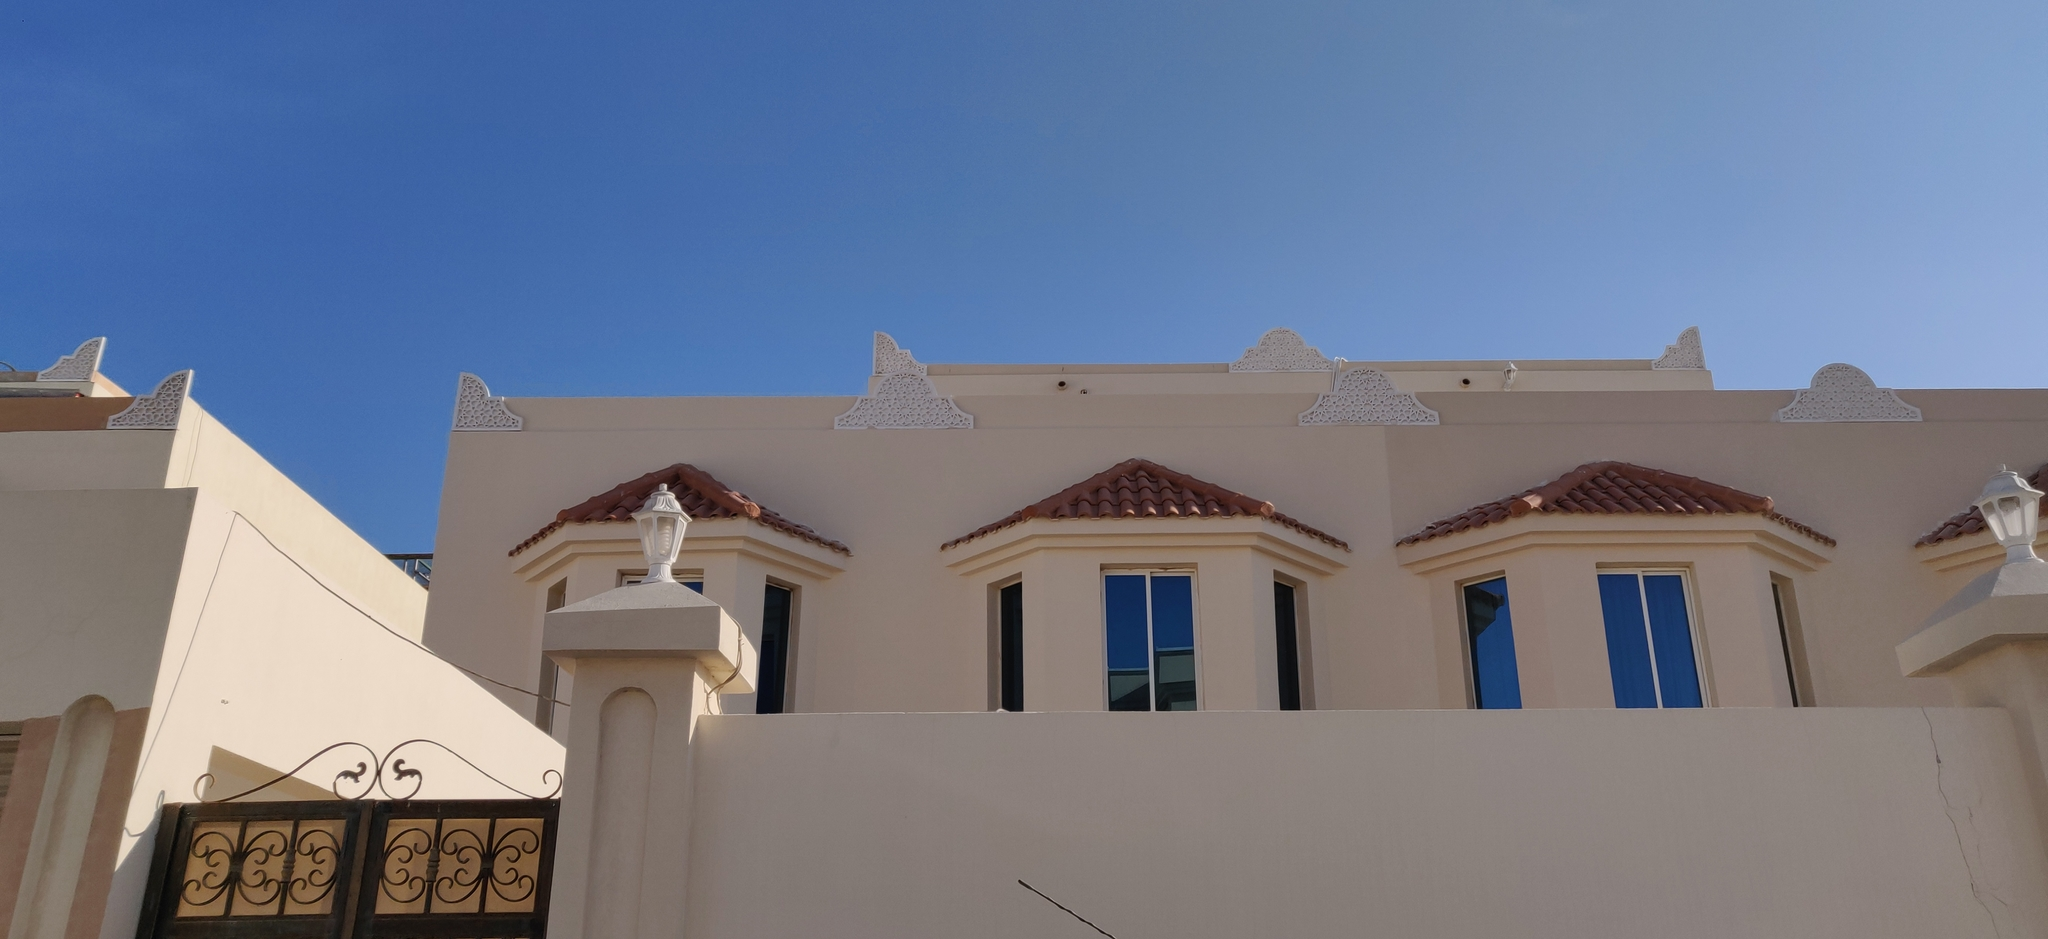 STAND ALONE (ONE FAMILY ONLY) VILLA AVAILABLE AL THUMAMA (BEHIND ANSAR GALLERY)